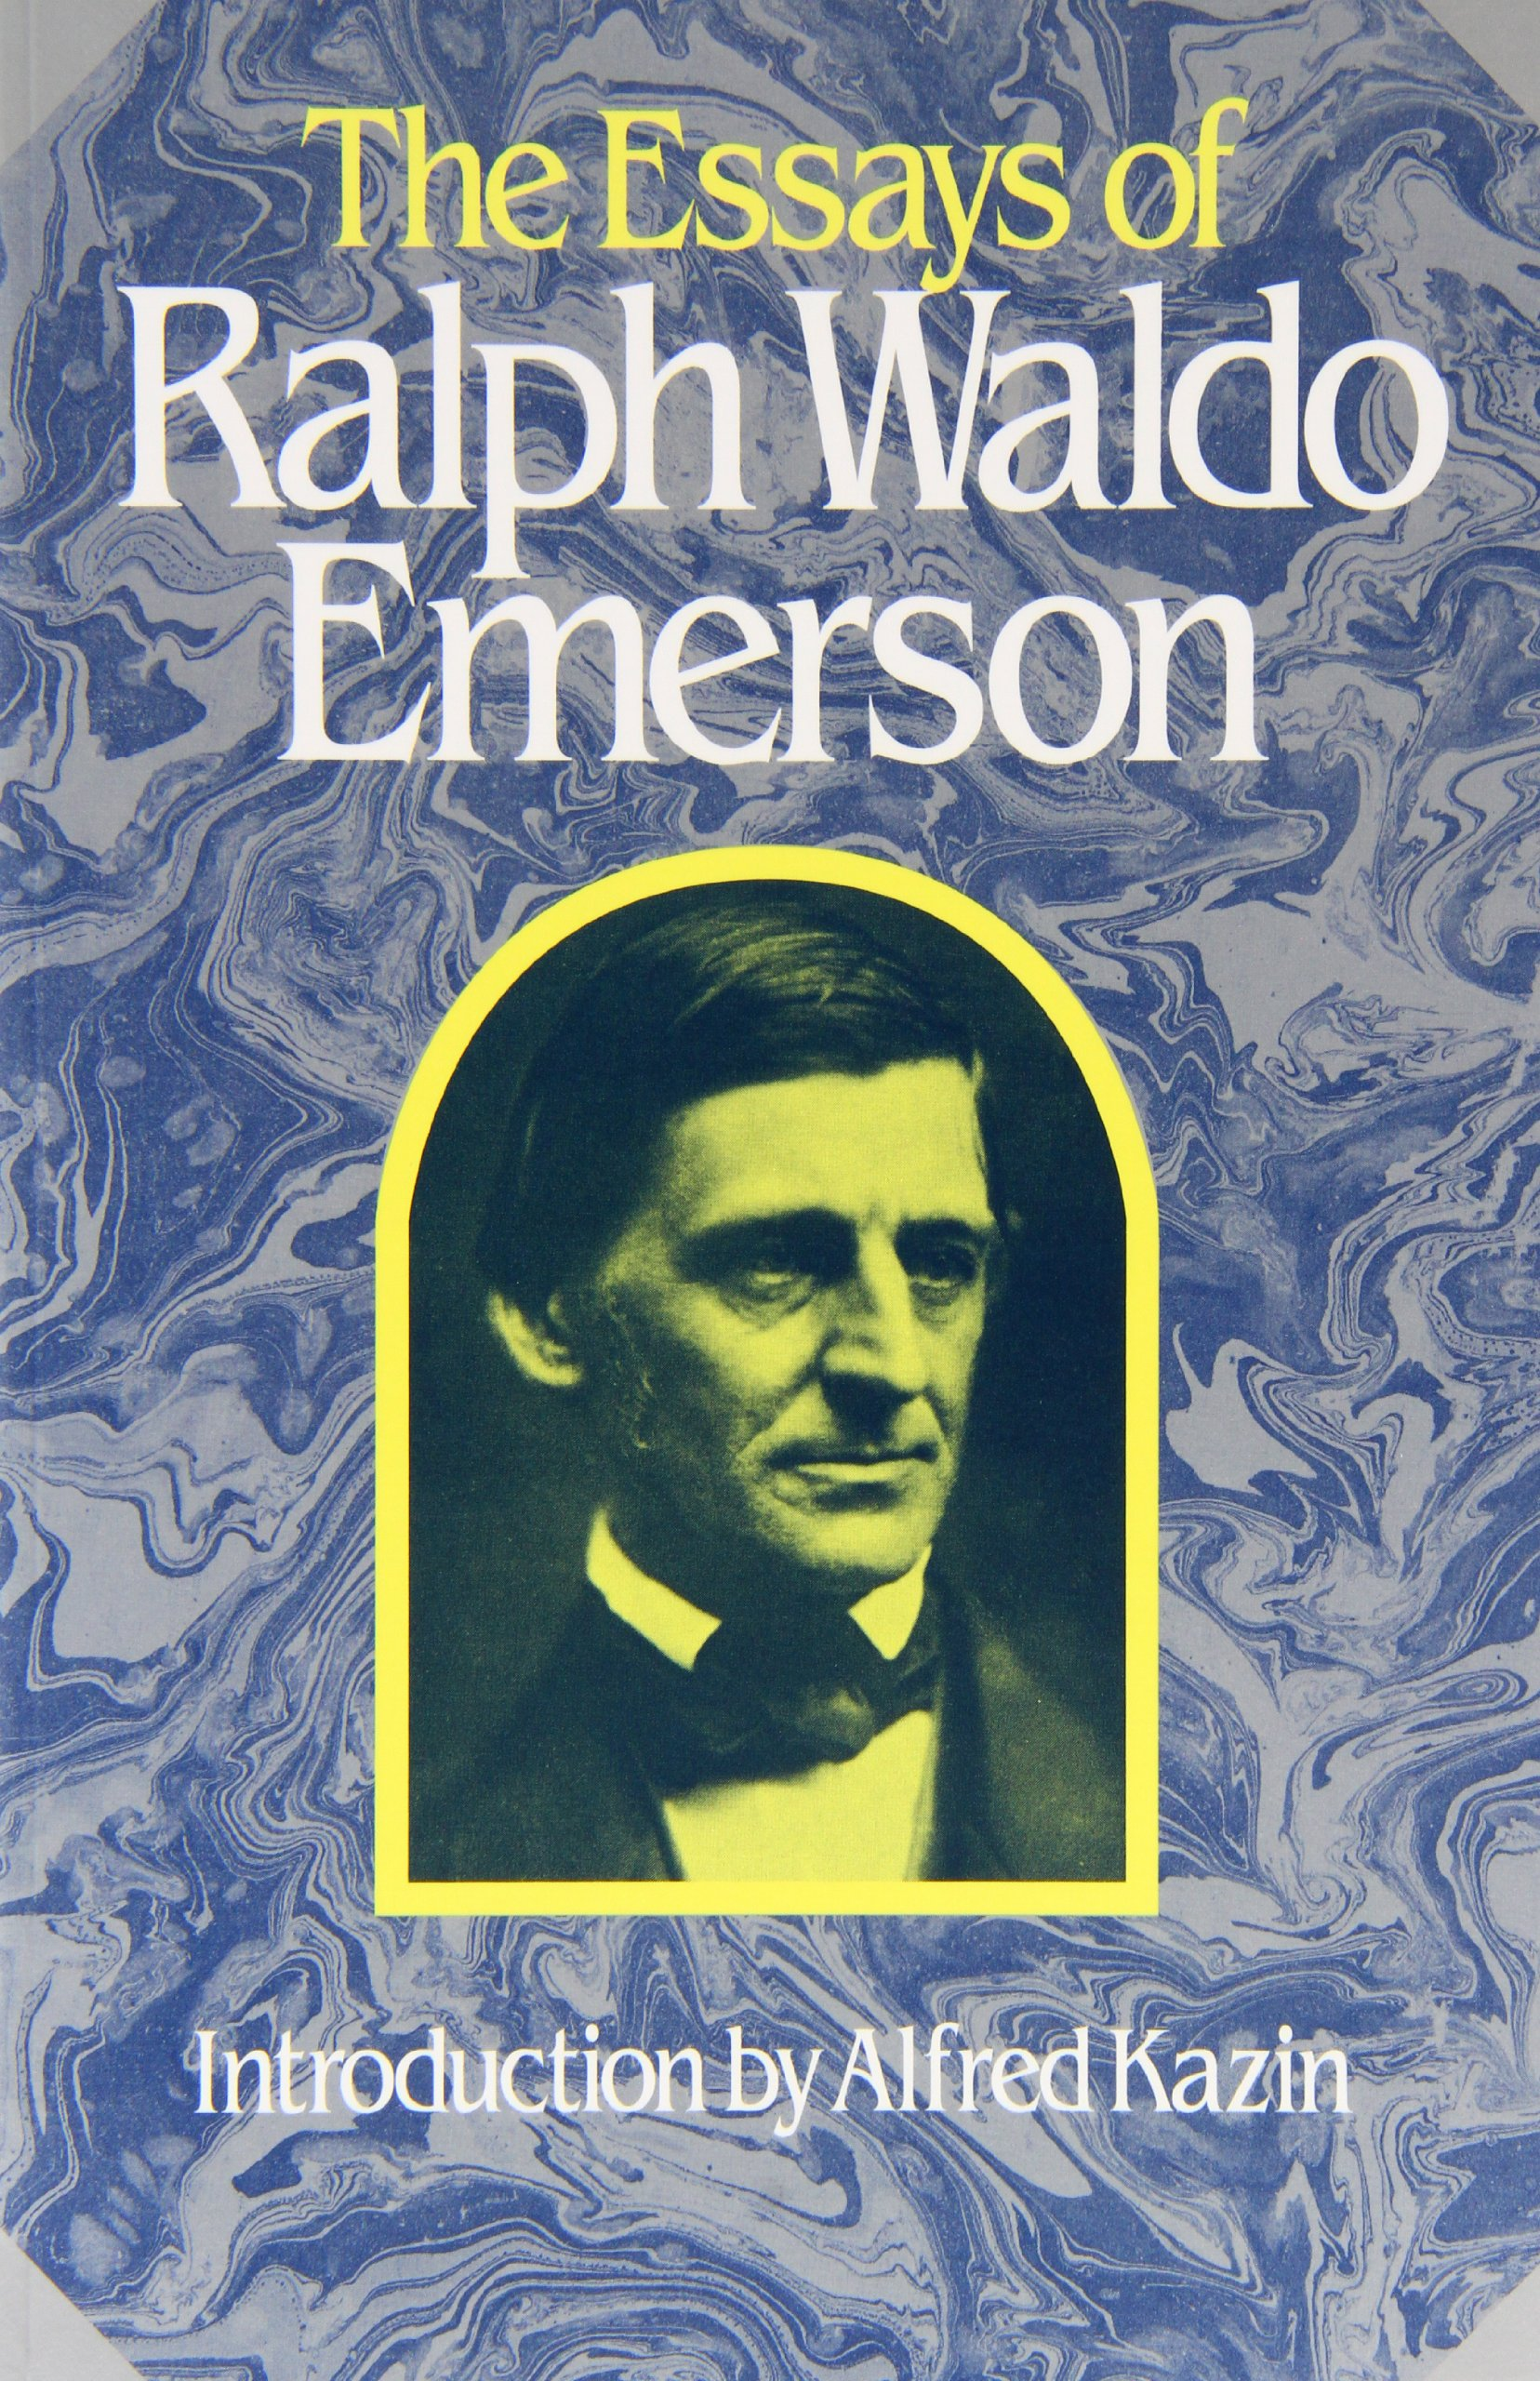 emerson nature selected essays Ralph waldo emerson  self-reliance, in which the writer instructs his listener to examine his relationship with nature  selected bibliography prose essays.